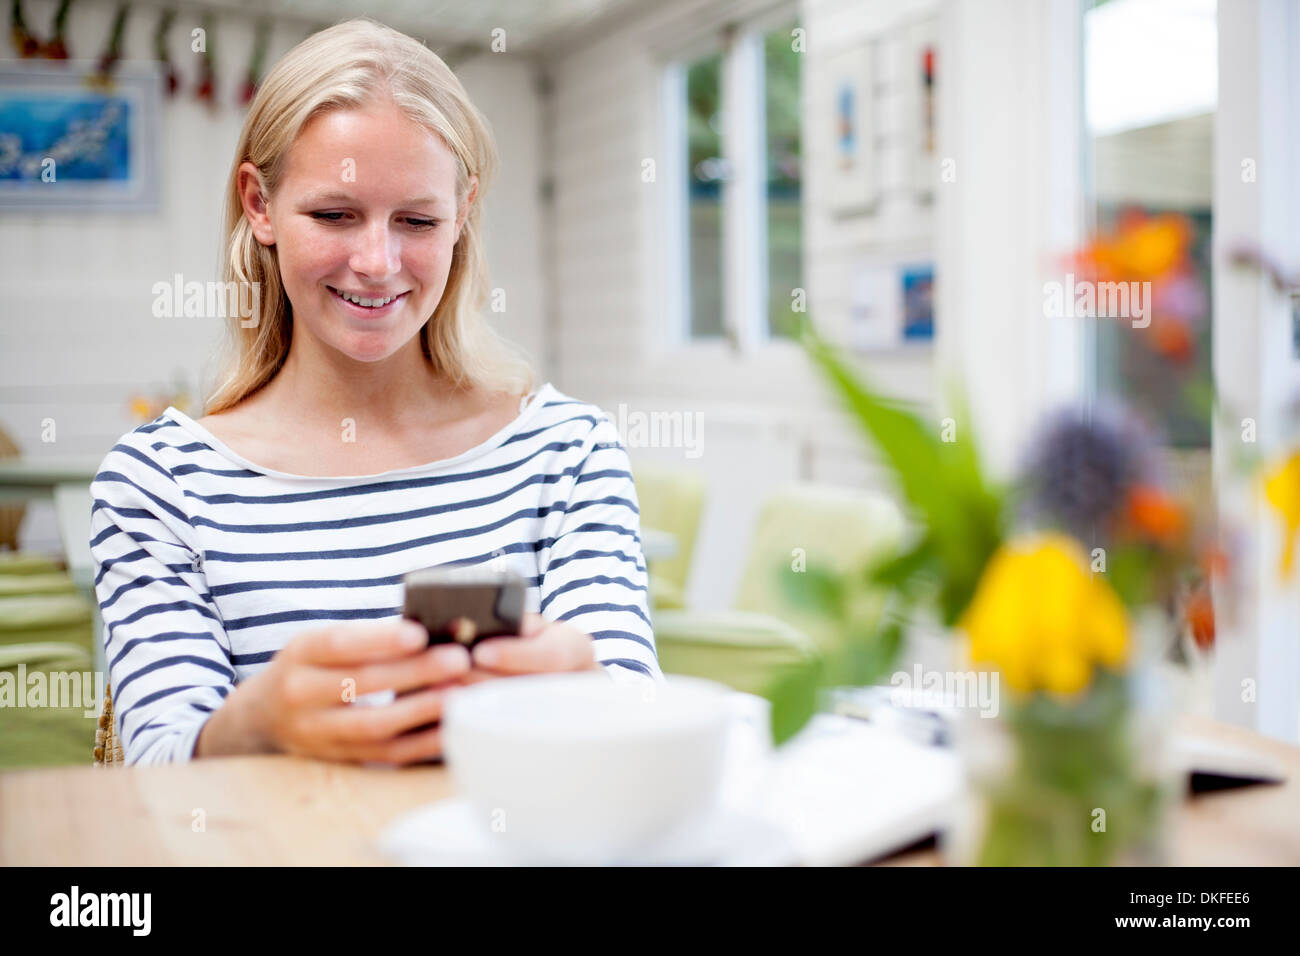 Young woman in cafe looking at mobile phone - Stock Image